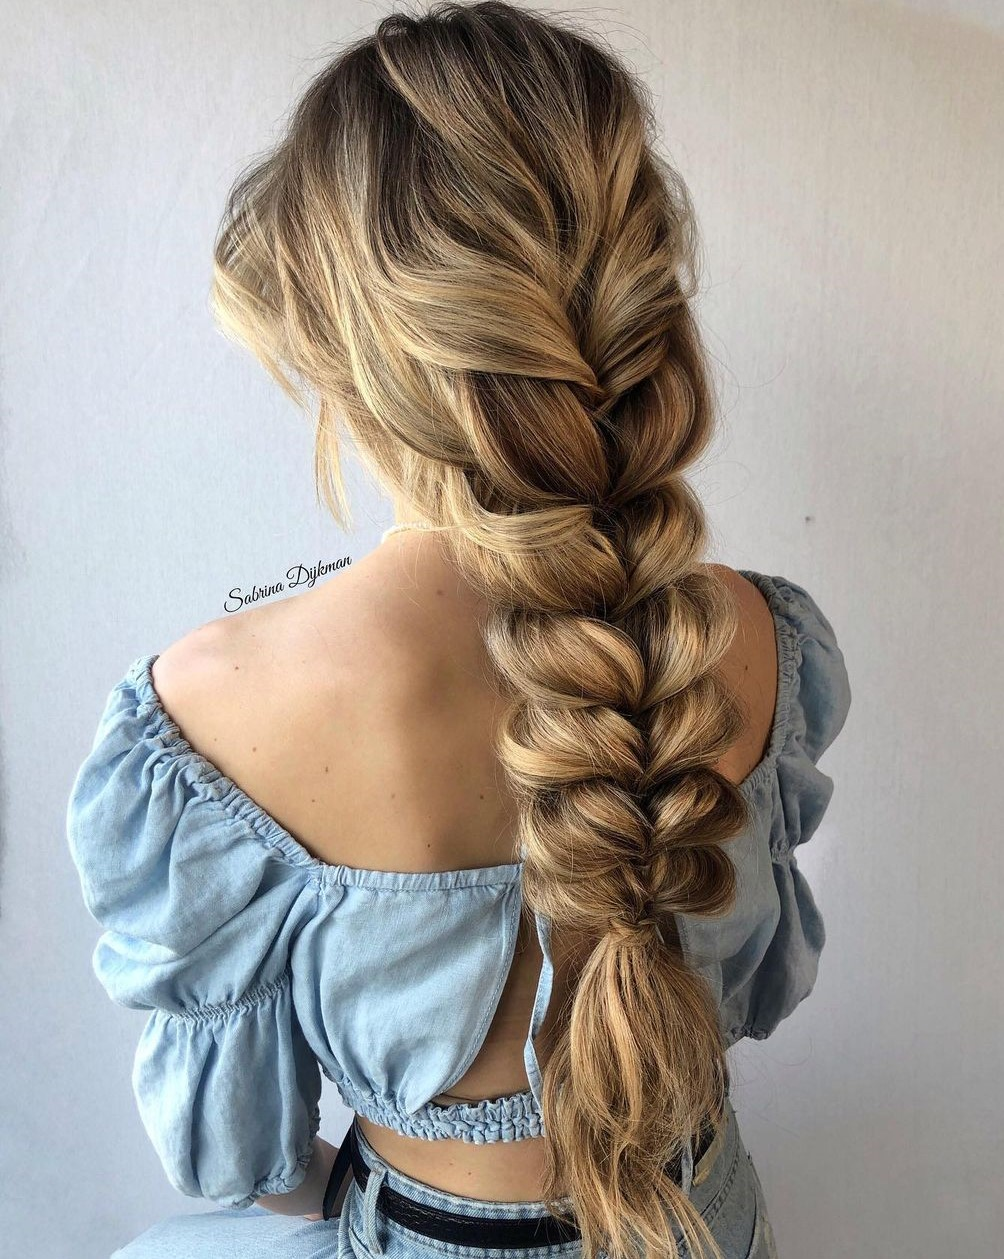 Fast-Braiding Hairstyle for Thick Hair